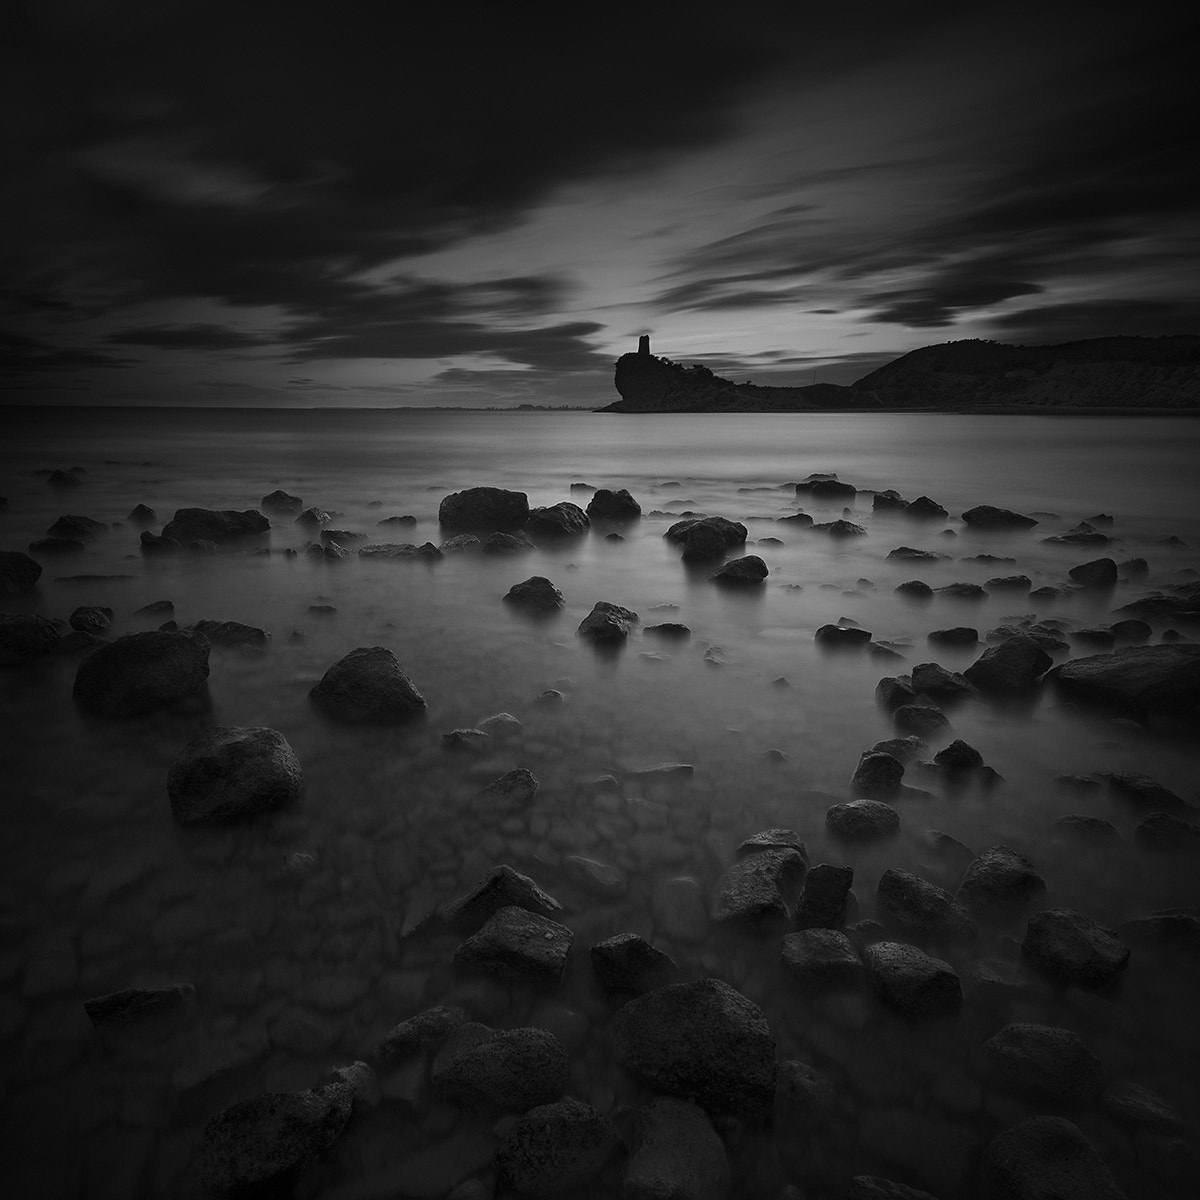 Photograph Alone in the dark by Pedro  Díaz Molins on 500px